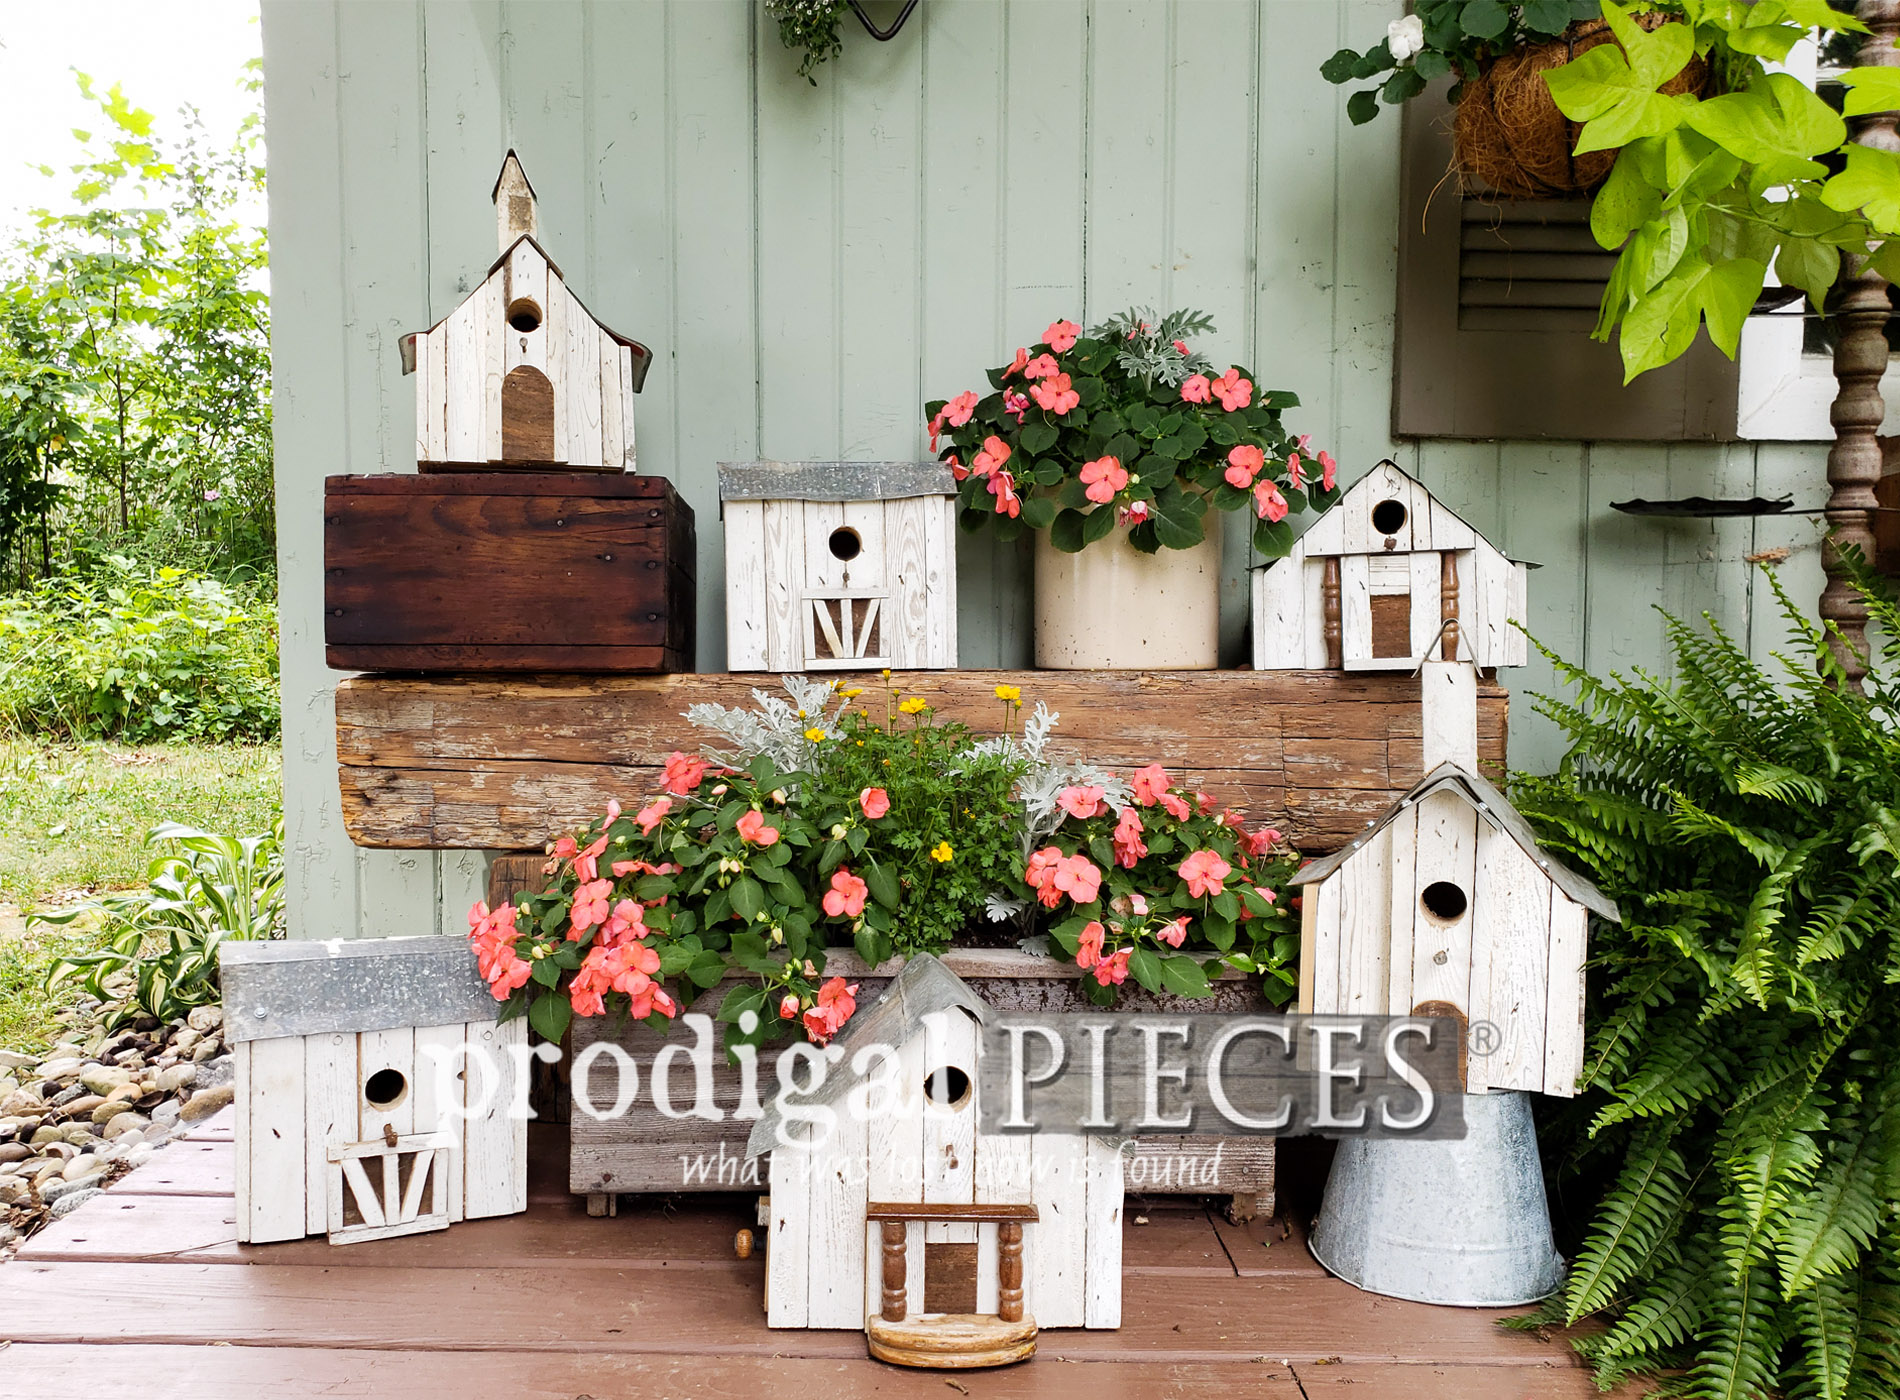 Featured Salvaged Junk Birdhouses created by Larissa of Prodigal Pieces | prodigalpieces.com